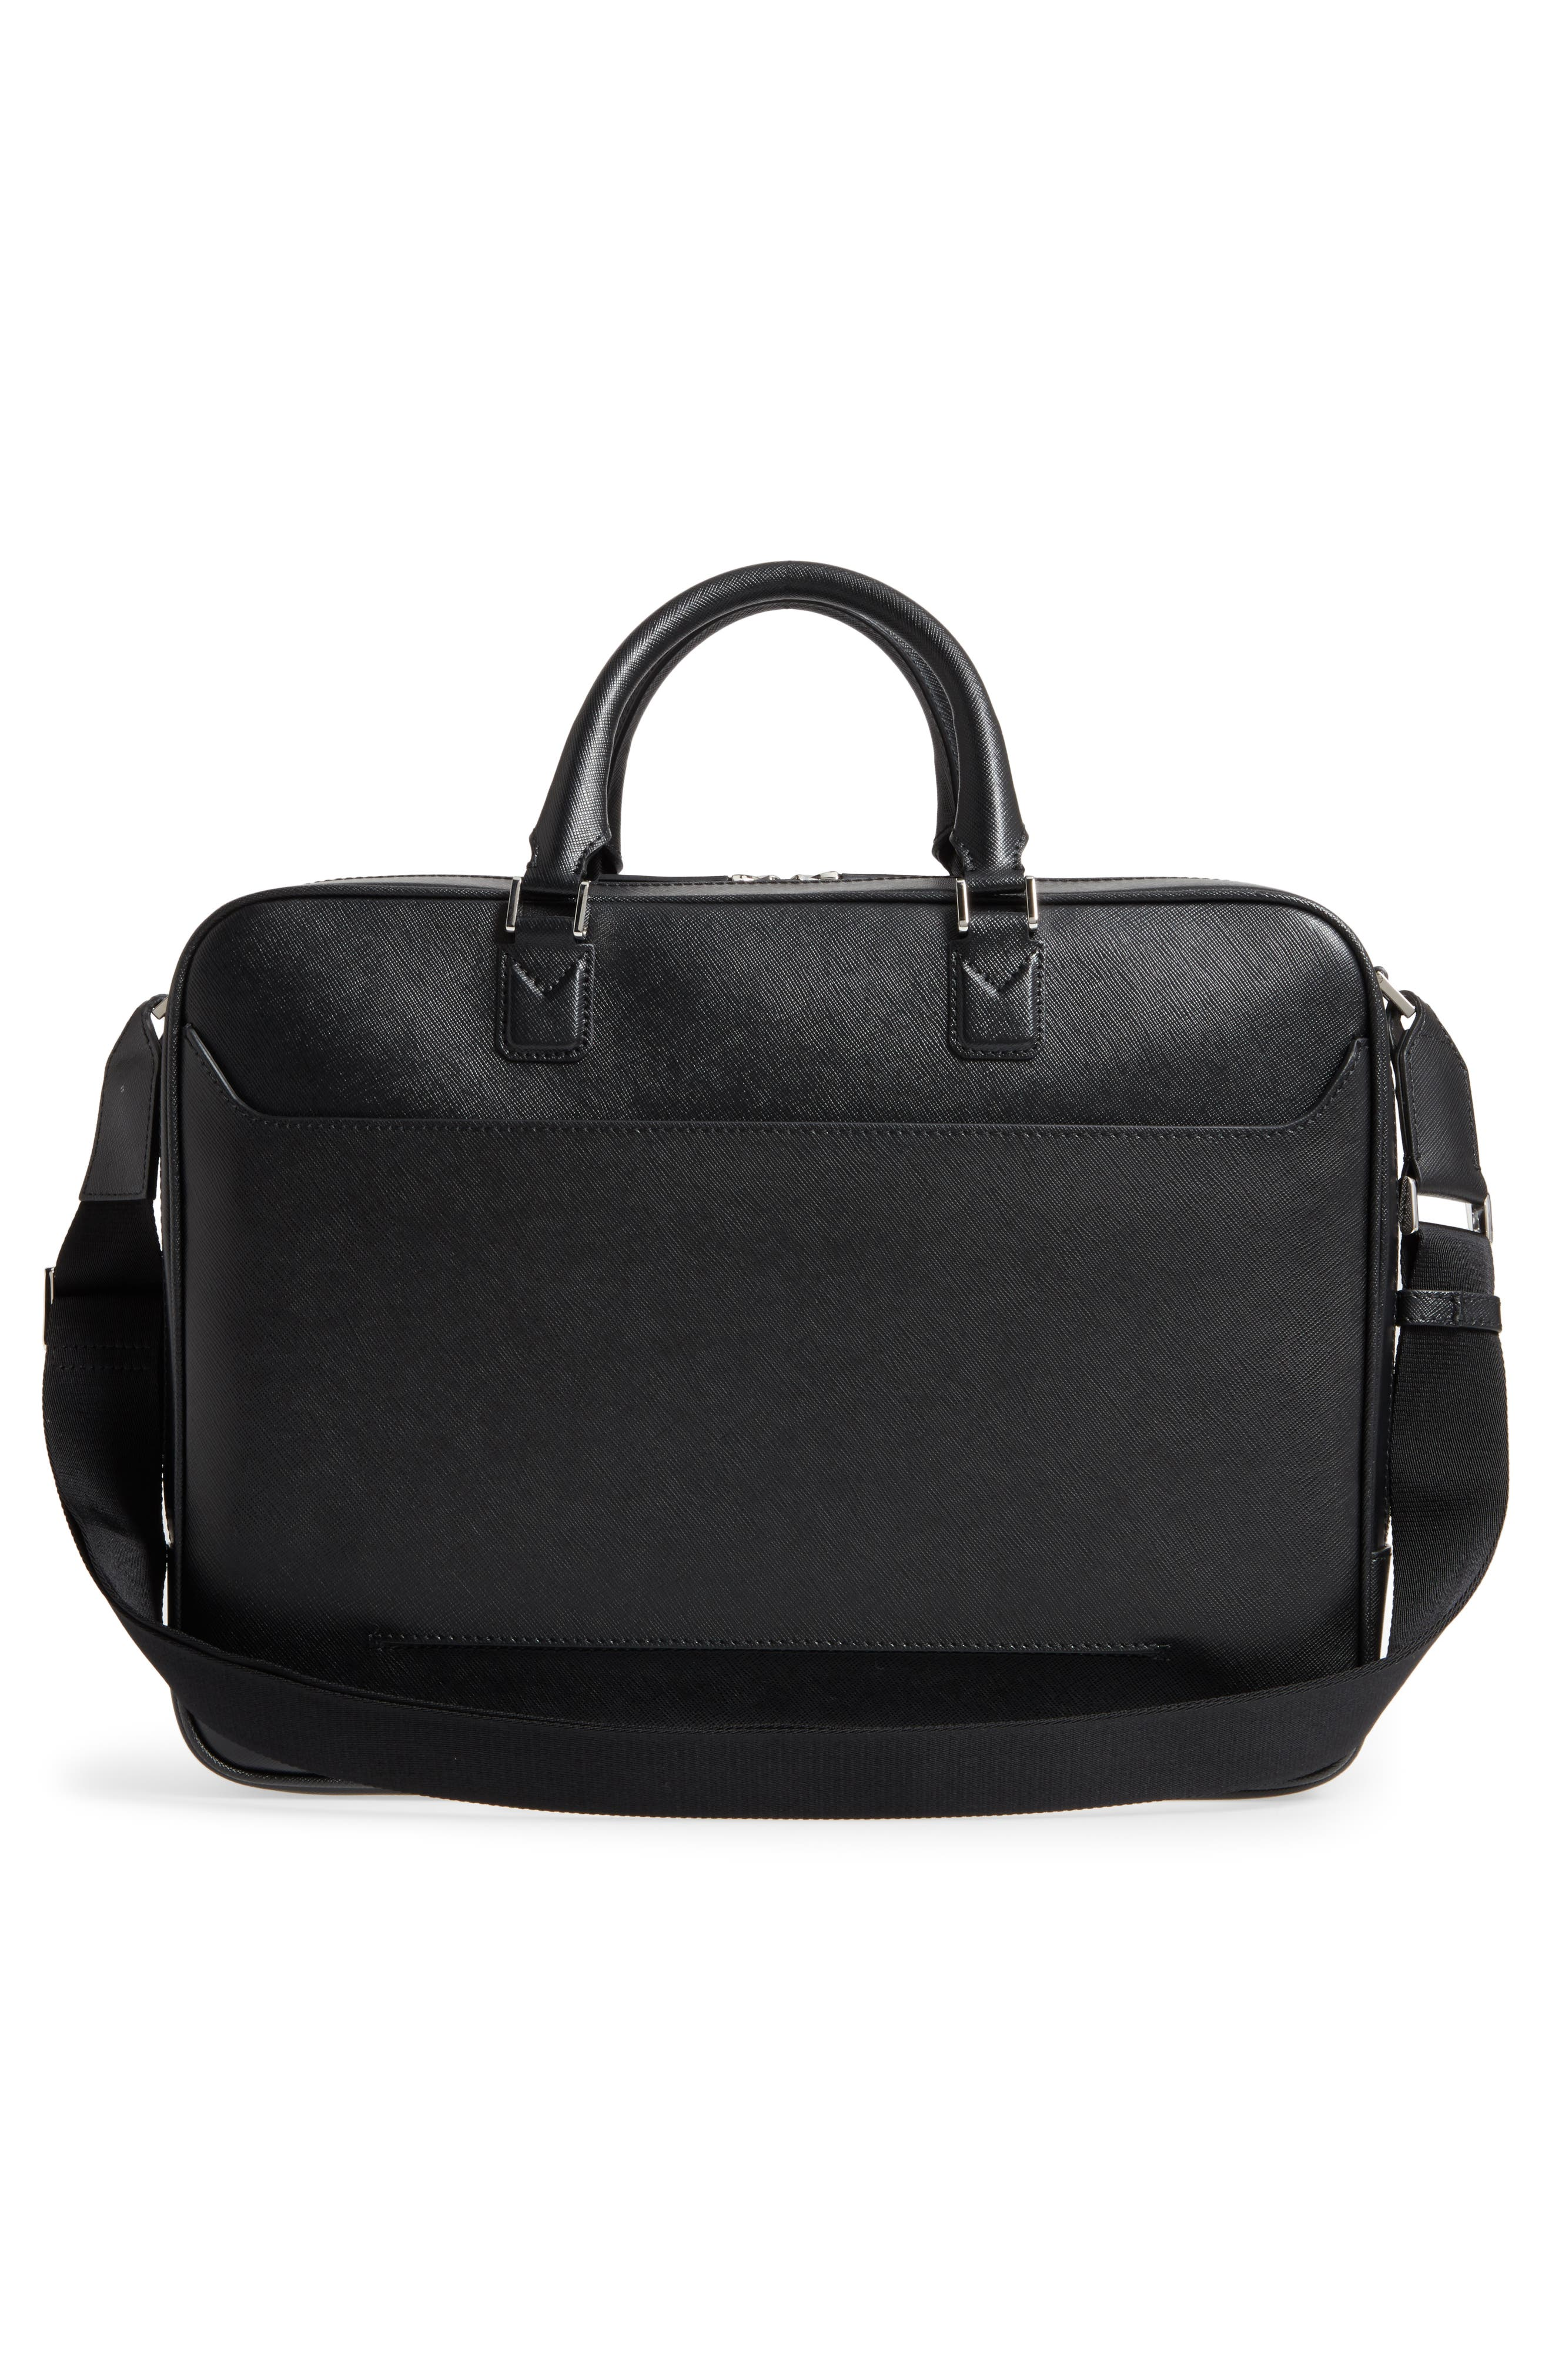 MONTBLANC, Sartorial Leather Briefcase, Alternate thumbnail 3, color, 001